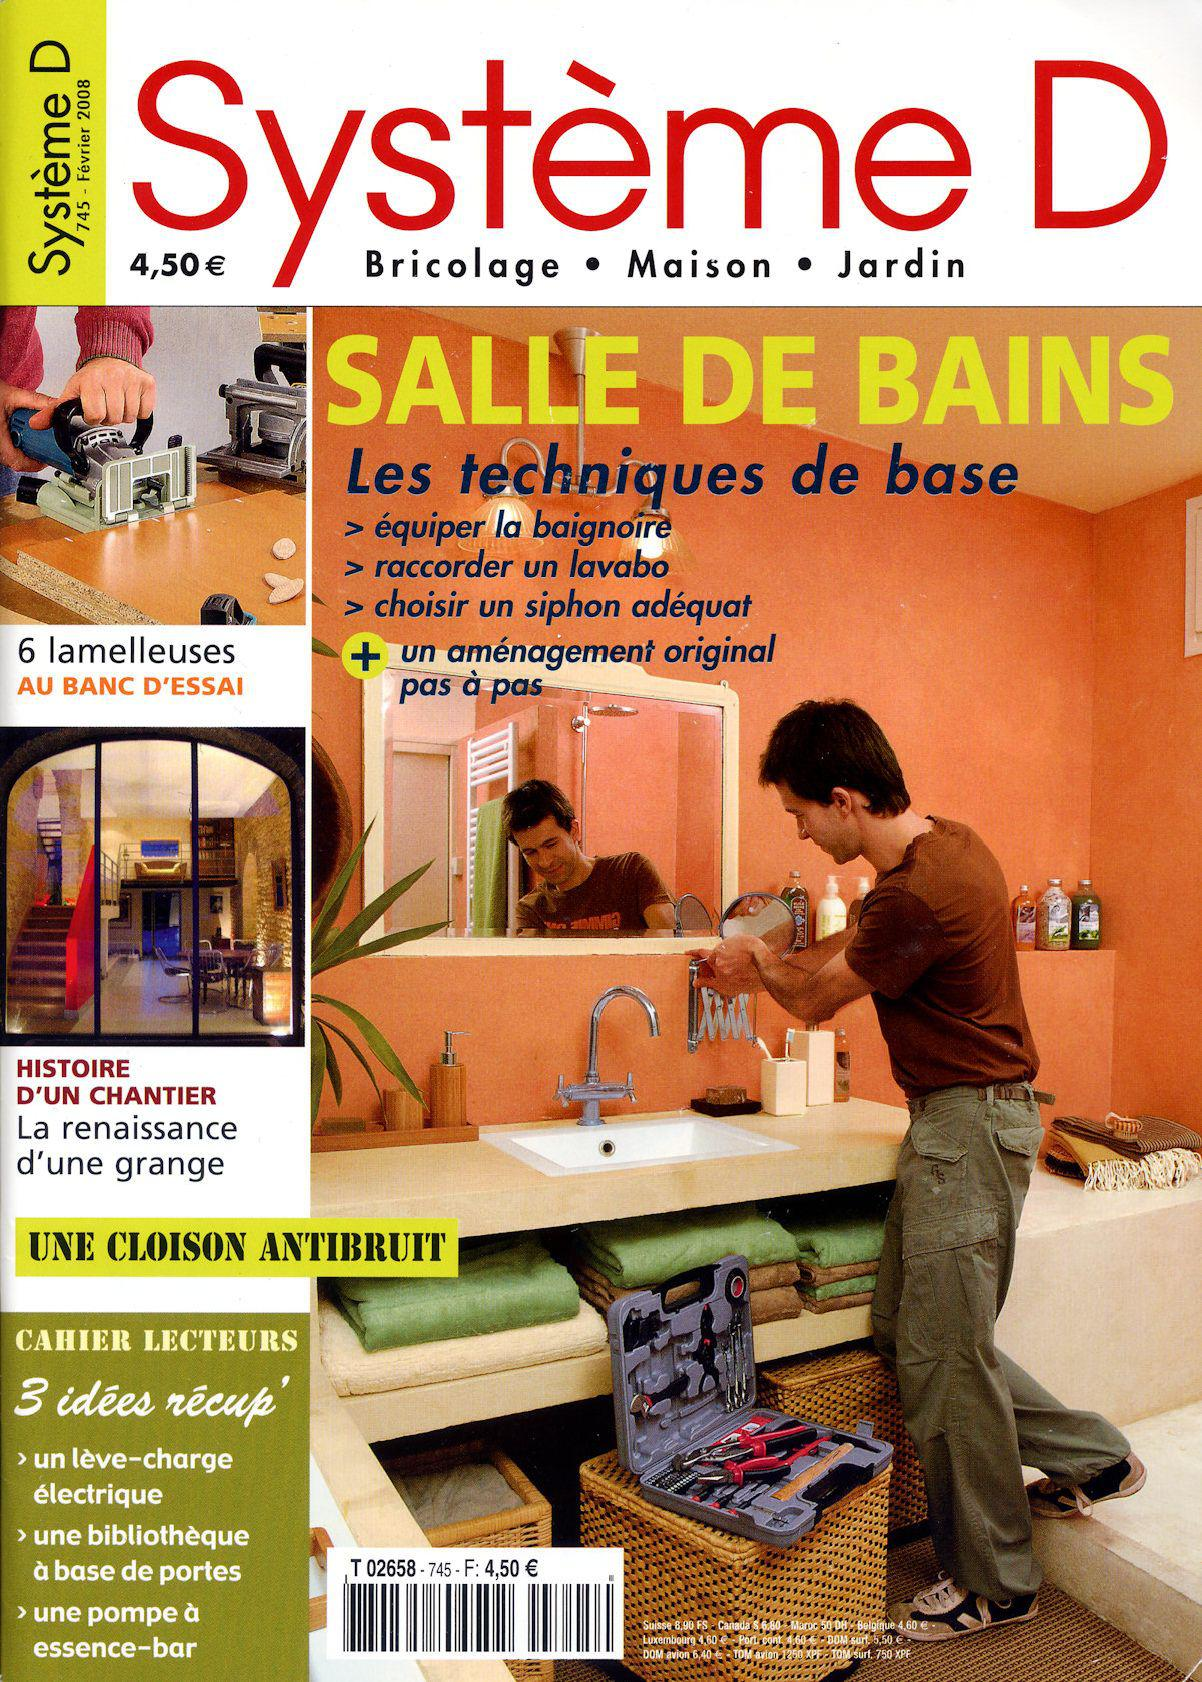 Systeme D No.745